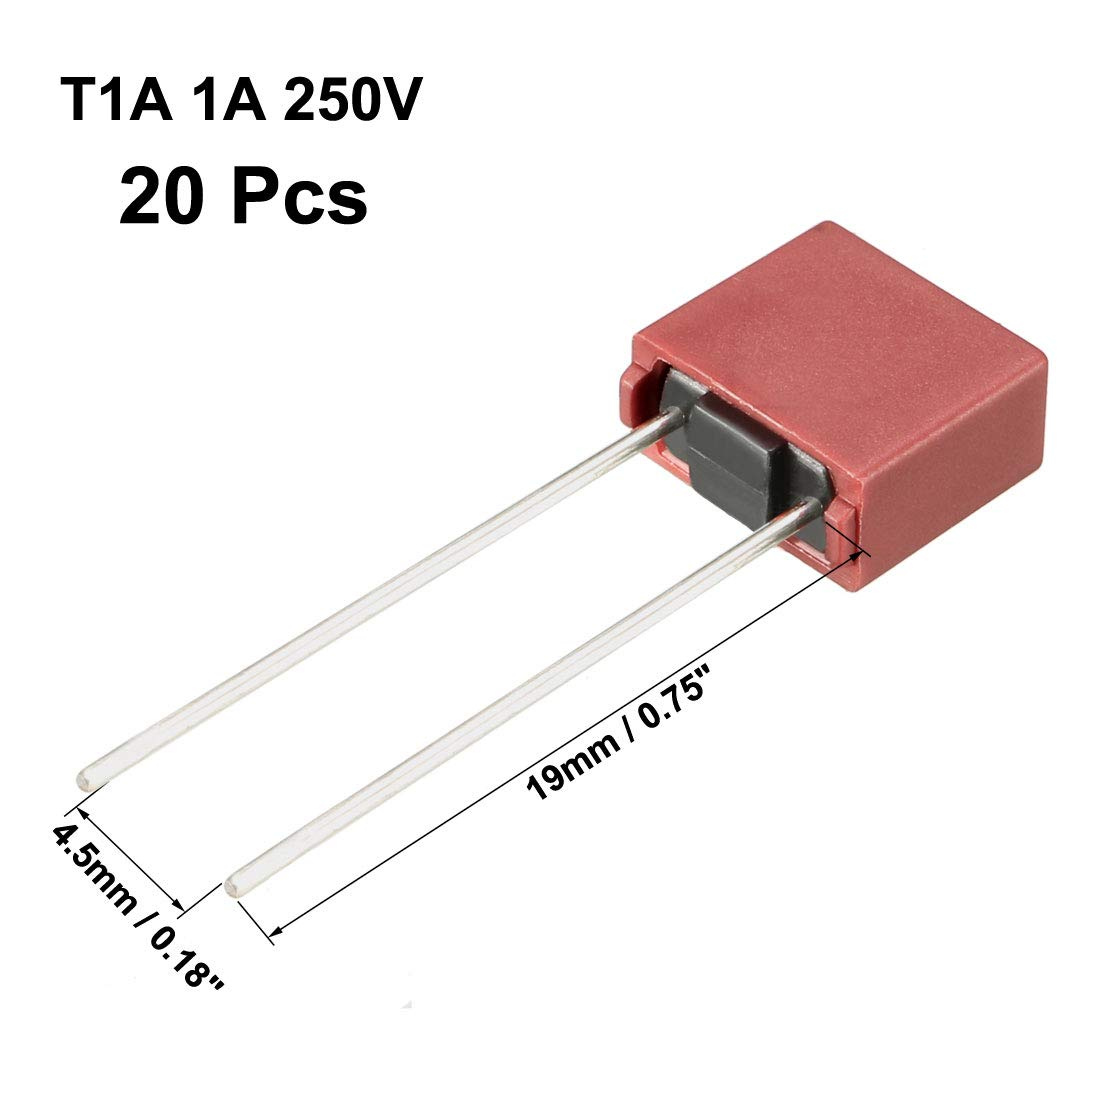 uxcell 10Pcs DIP Mounted Miniature Square Slow Blow Micro Fuse T6.3A 6.3A 250V Red